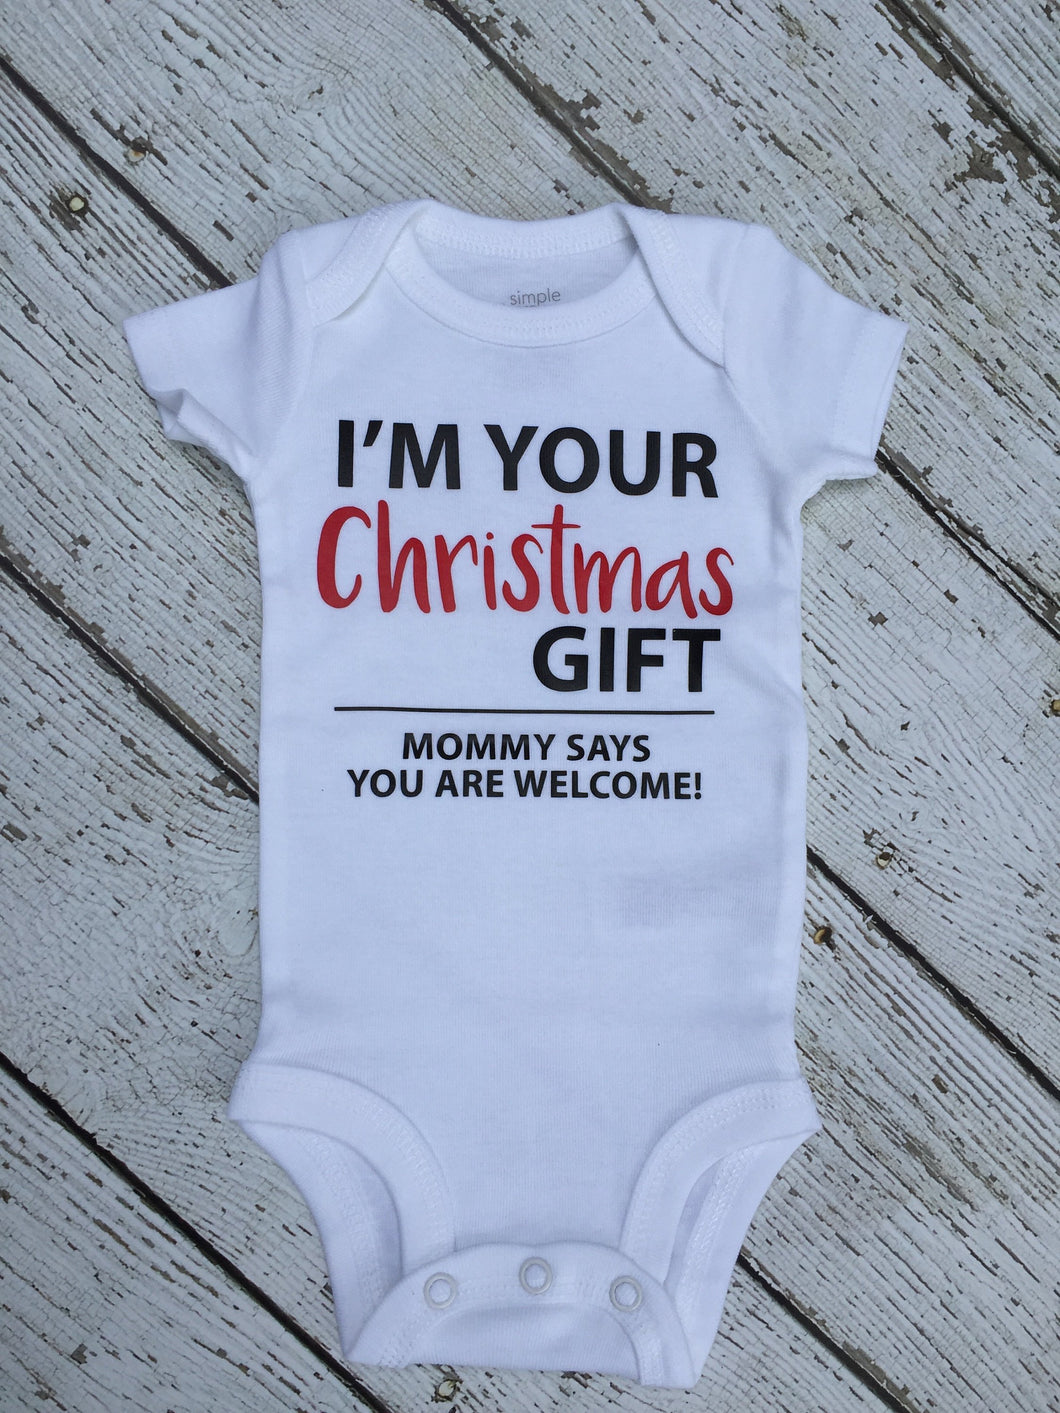 Christmas Gift From Daughter, Christmas Gift To Dad, Christmas Gift From Baby, Christmas Gift For New Dad, Christmas Gifts Ideas For Dad